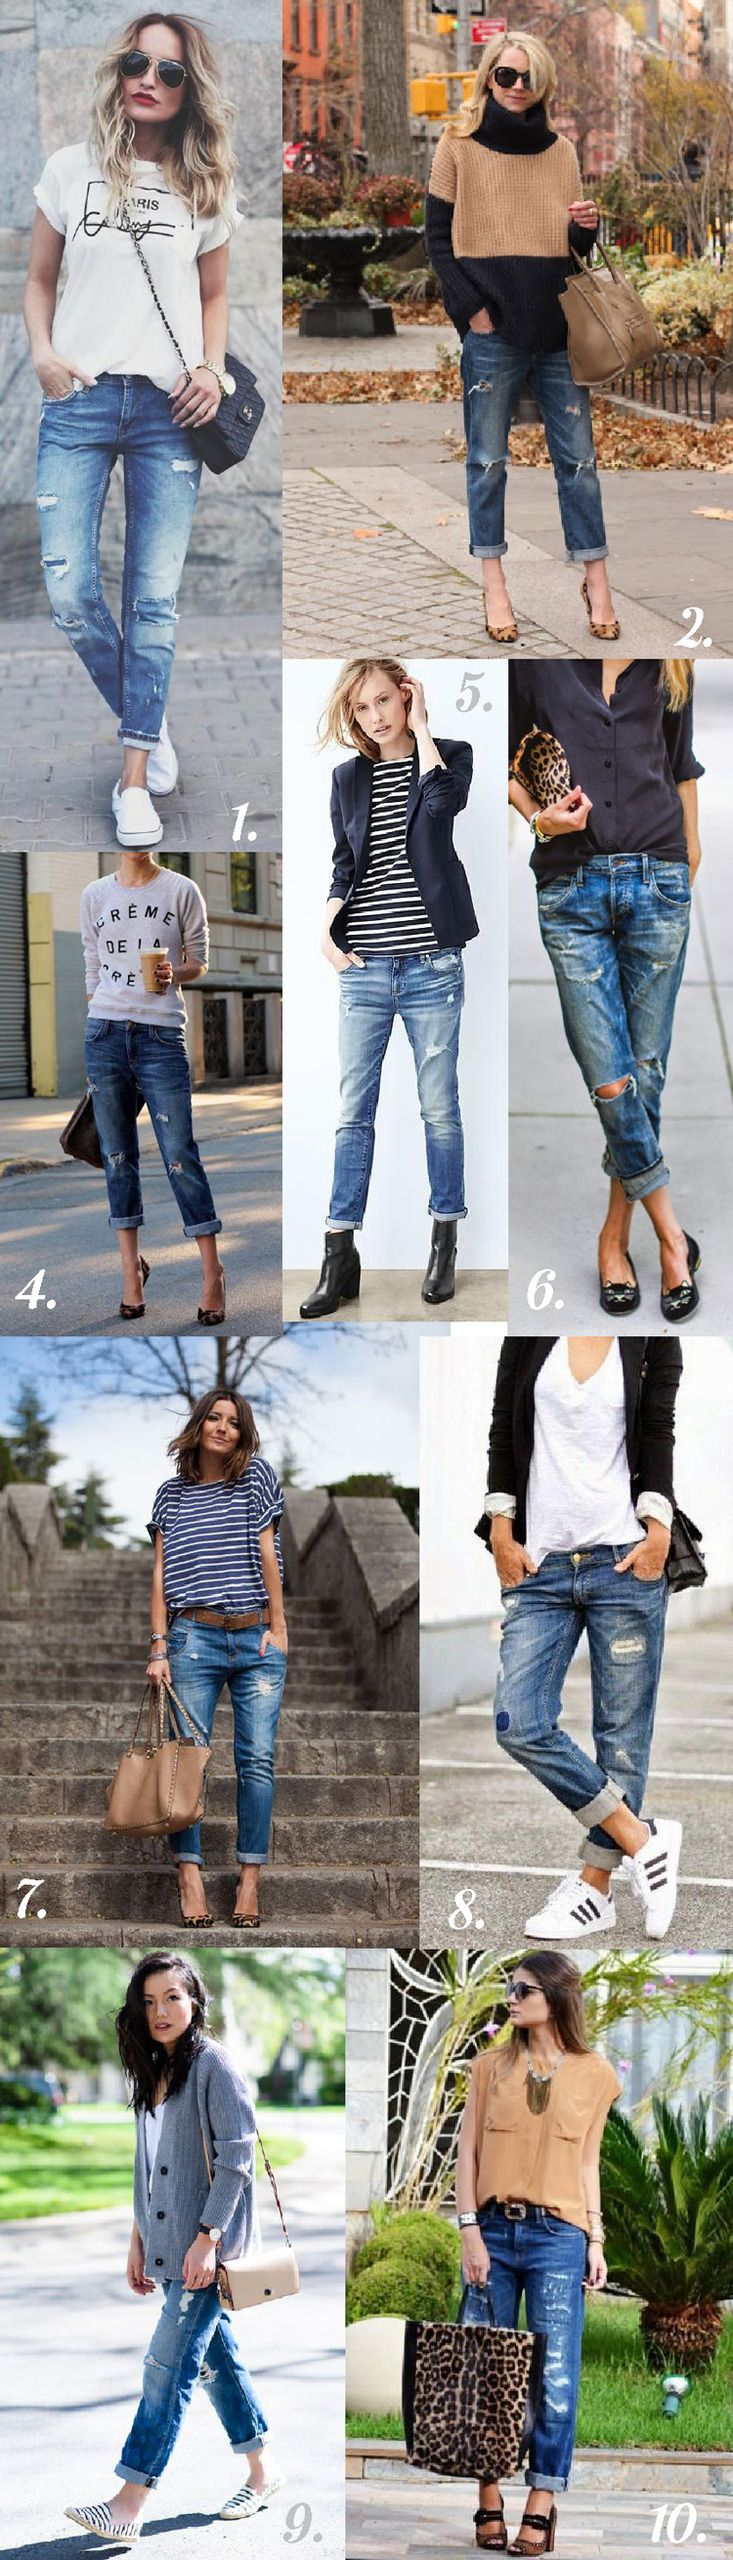 How to style distressed boyfriend jeans! // Closet Case Files http://closetcasefiles.com/morgan-boyfriend-jeans-stlying-inspiration/